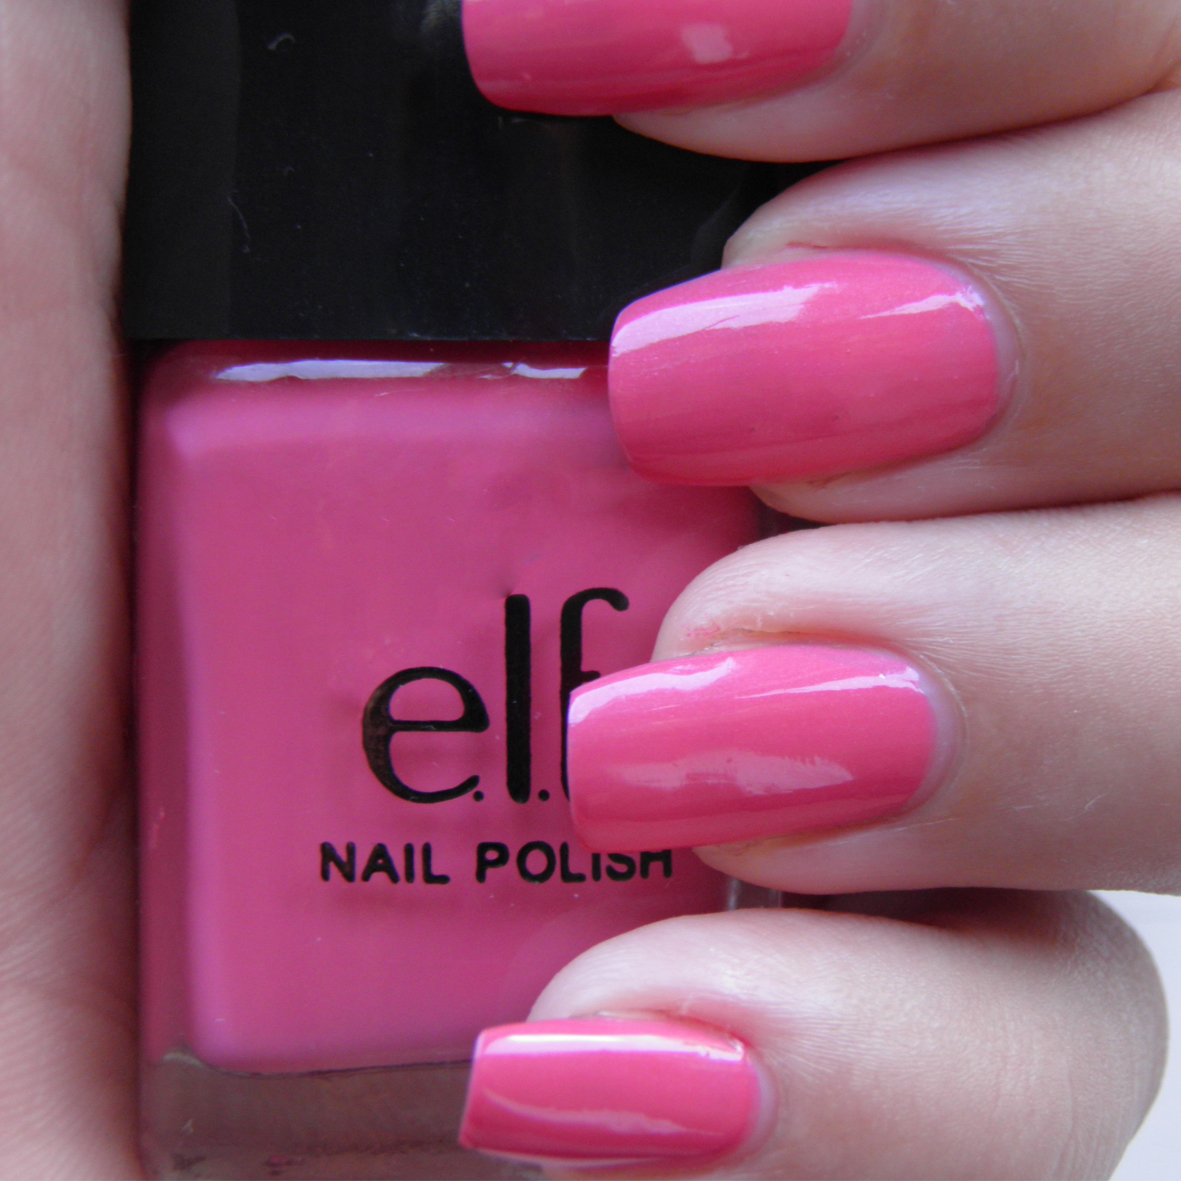 Creative nail art: Elf nail polish review